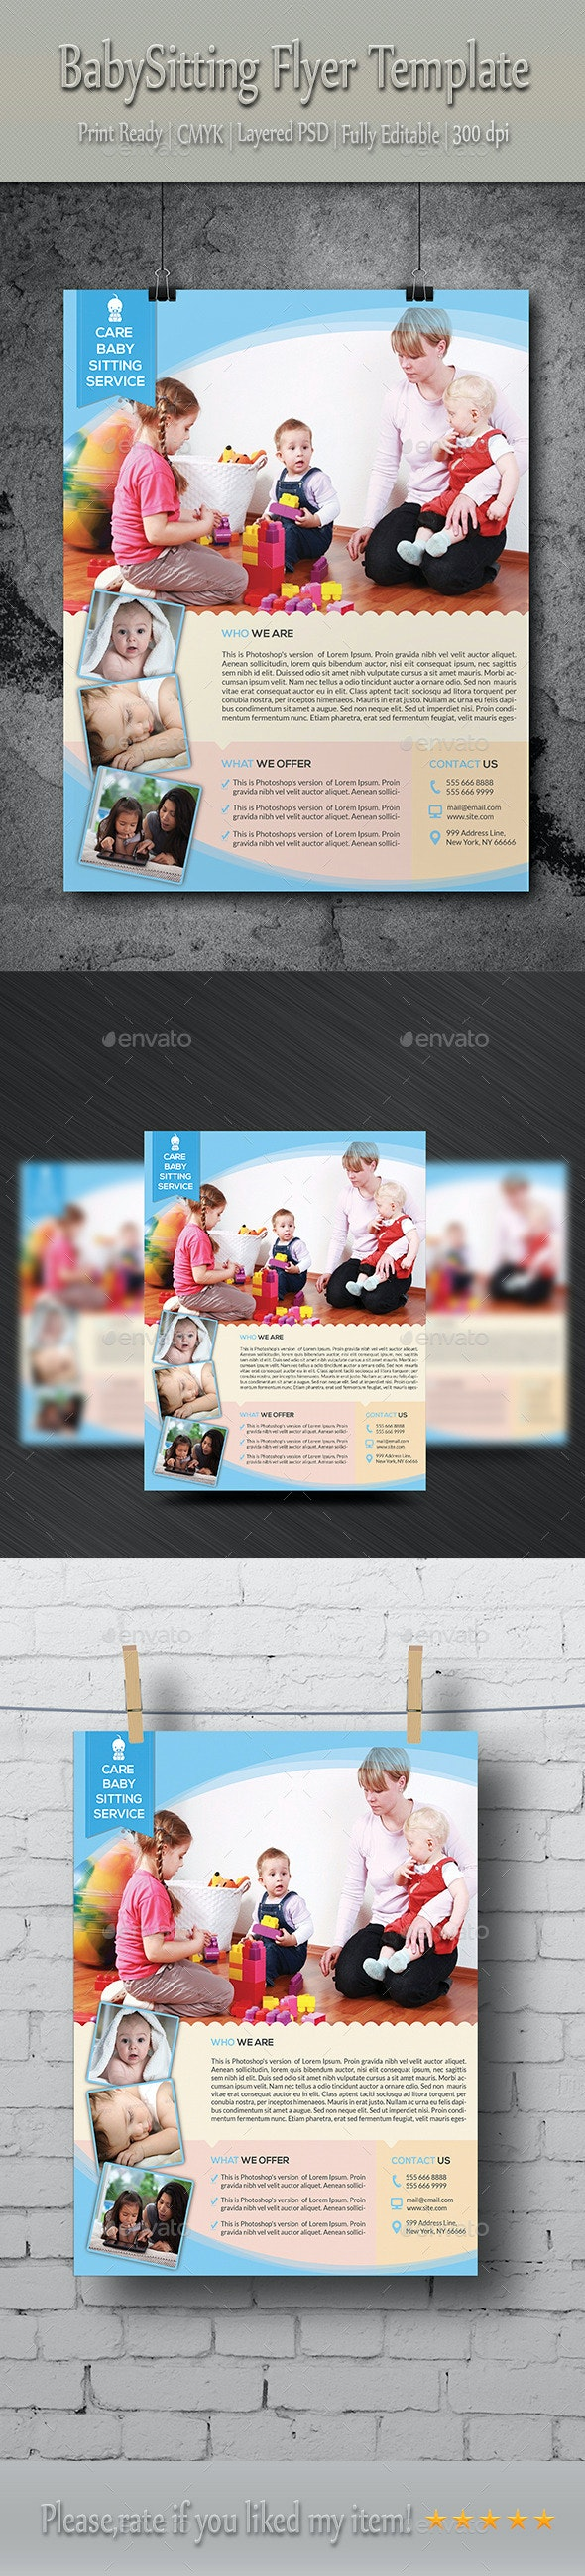 Babysitting & Daycare Flyer Template - Commerce Flyers